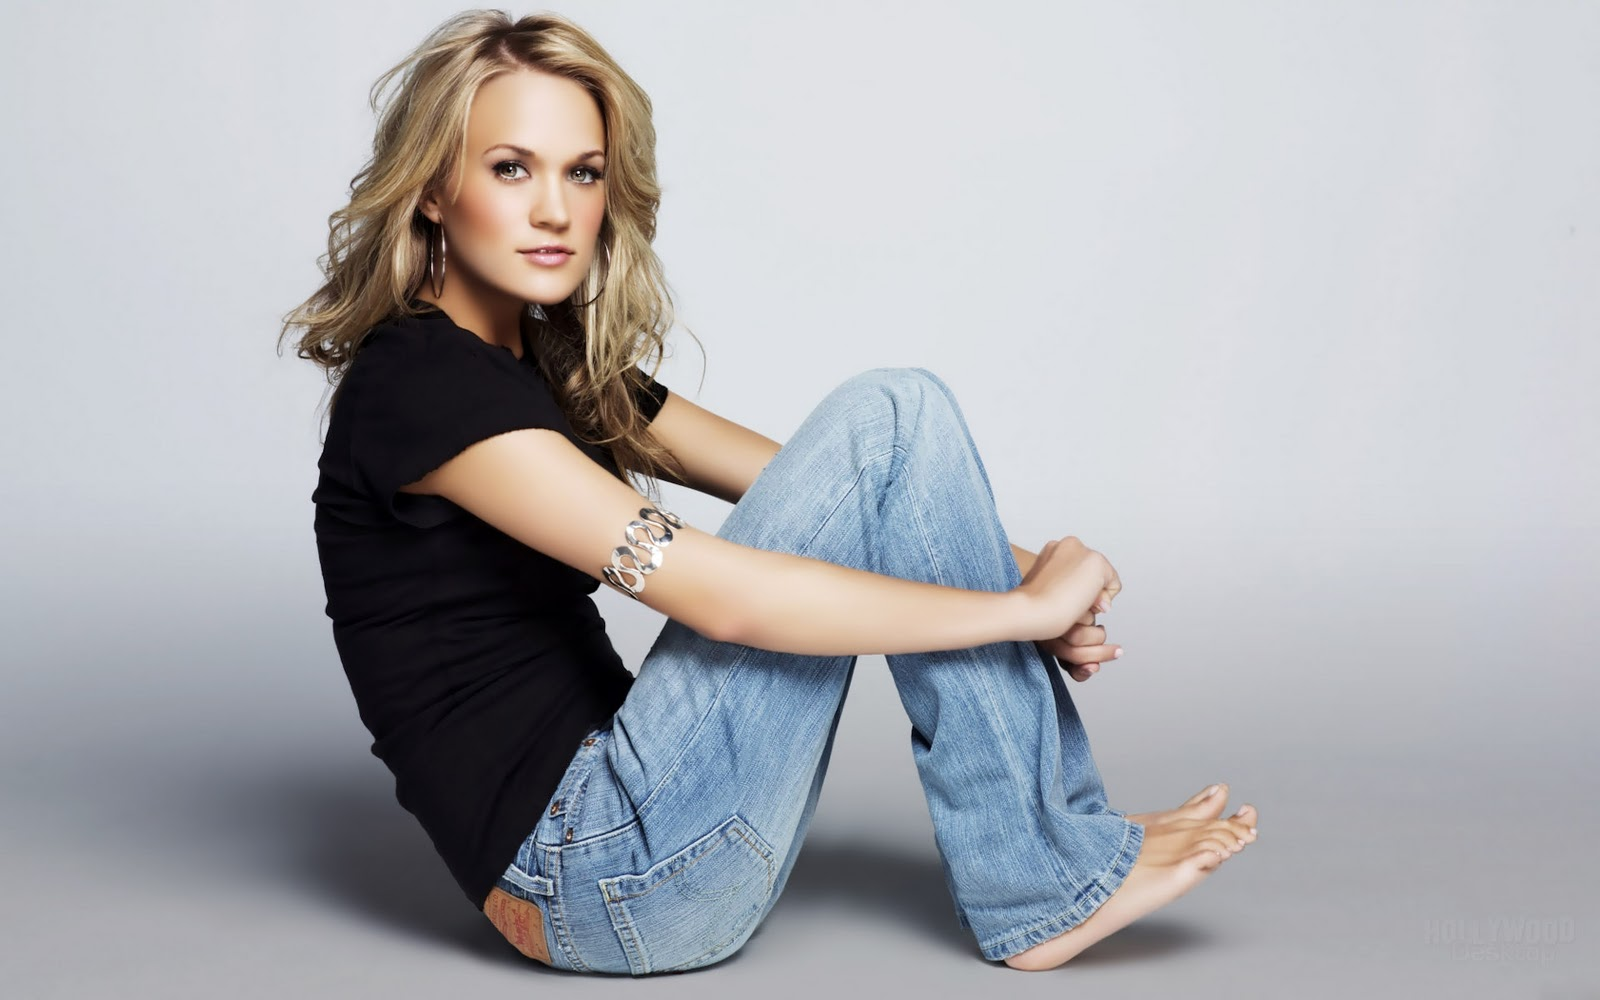 Wallpaper Carrie Underwood Sexy 1920x1200 Hollywood